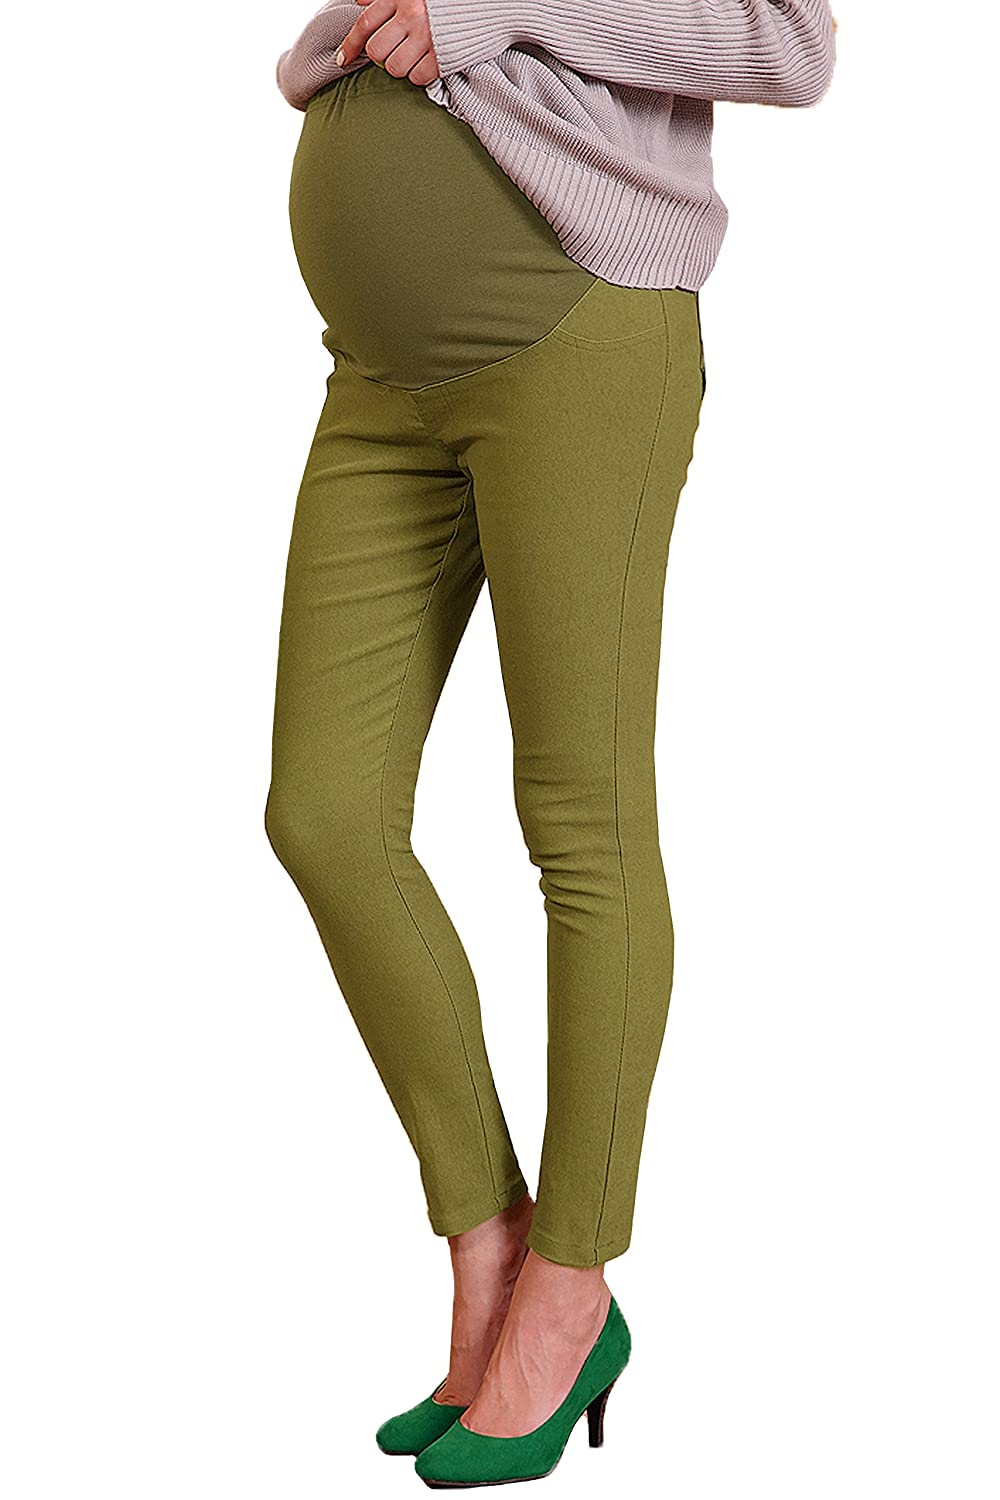 Sweet Mommy Raised Stretchy Maternity Skinny Pants Sweet Mommy Co. Ltd. sp4084